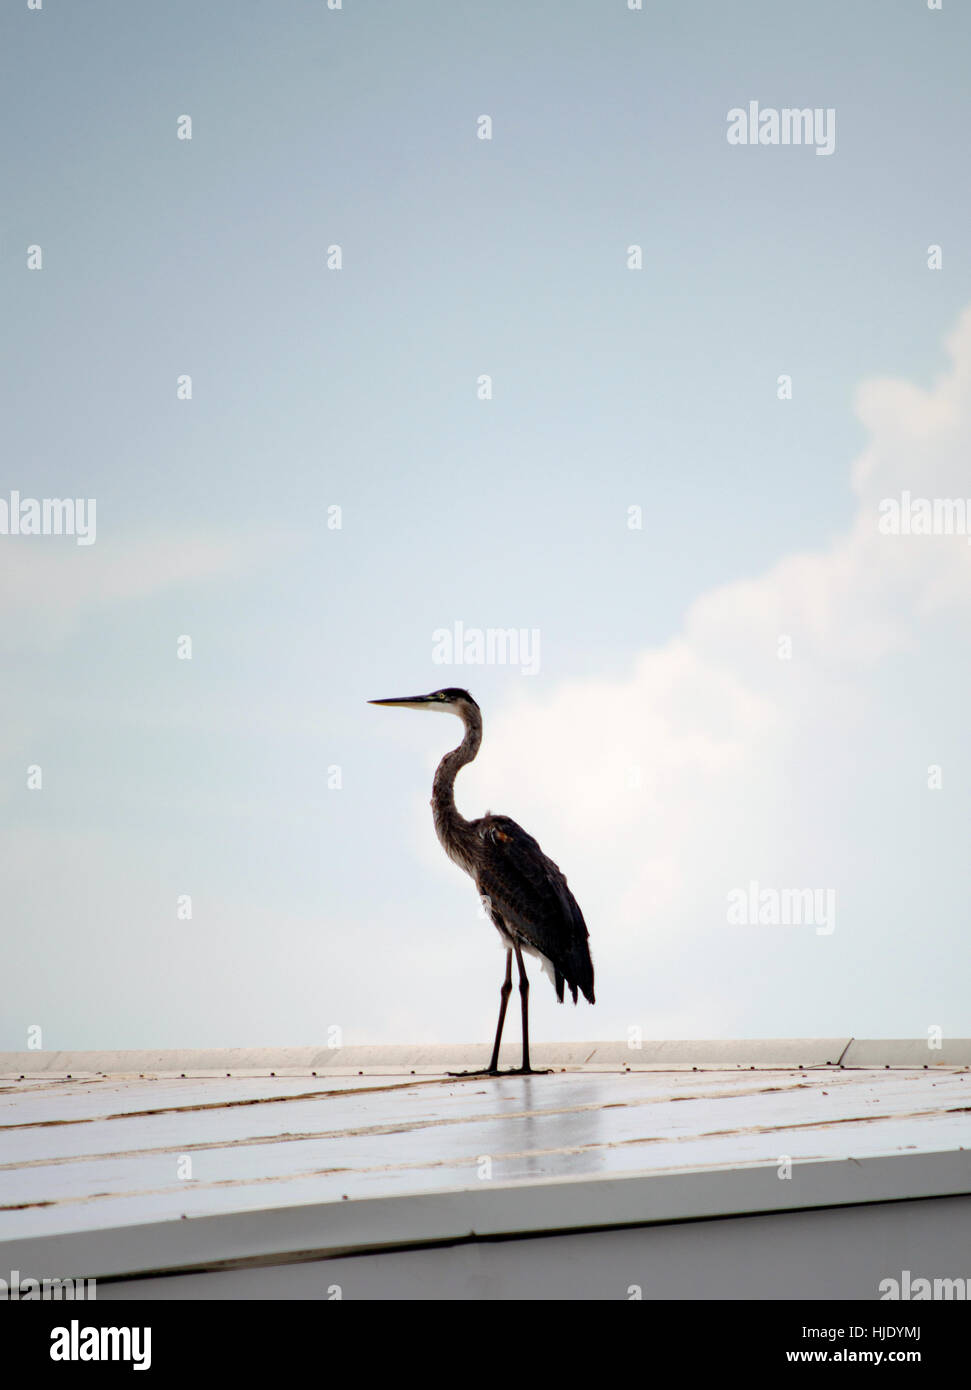 A crane bird sitting on a metal roof against a blue sky. - Stock Image